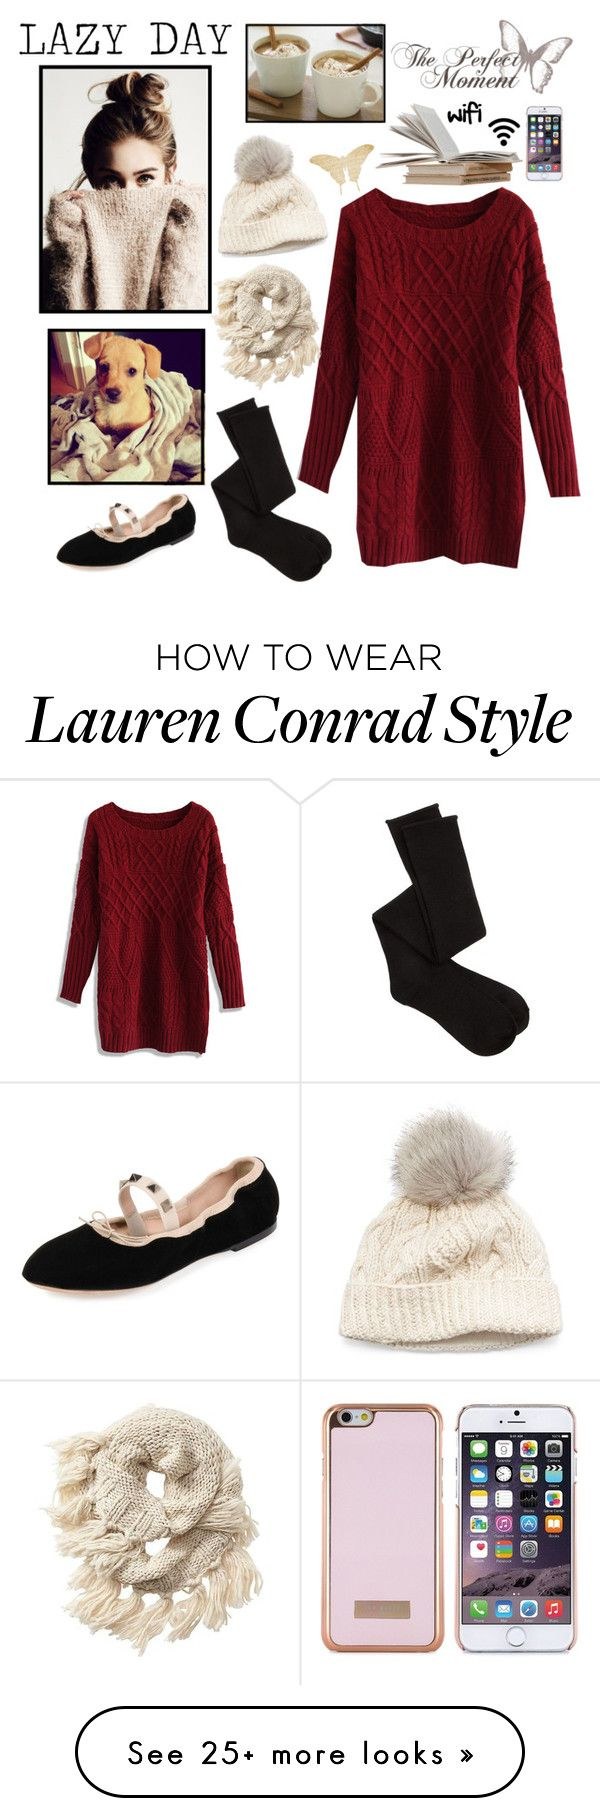 """""""Lazy Day Outfit"""" by whims-and-craze on Polyvore featuring Chicwish, SIJJL, Athleta, Charlotte Russe, Lauren Conrad, Valentino and Ted Baker"""